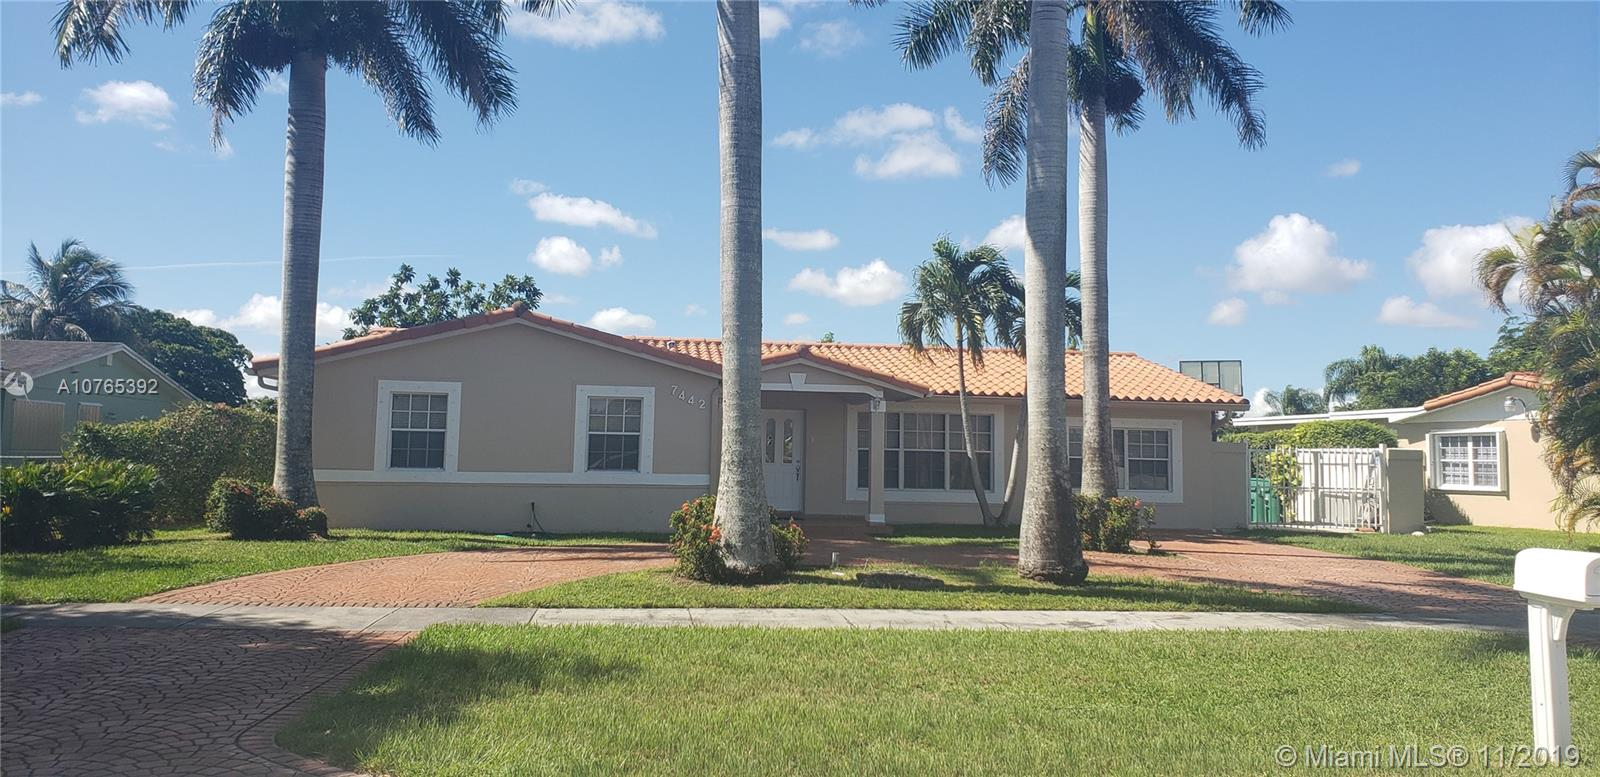 7442 SW 127th Dr, Kendall in Miami-dade County County, FL 33183 Home for Sale